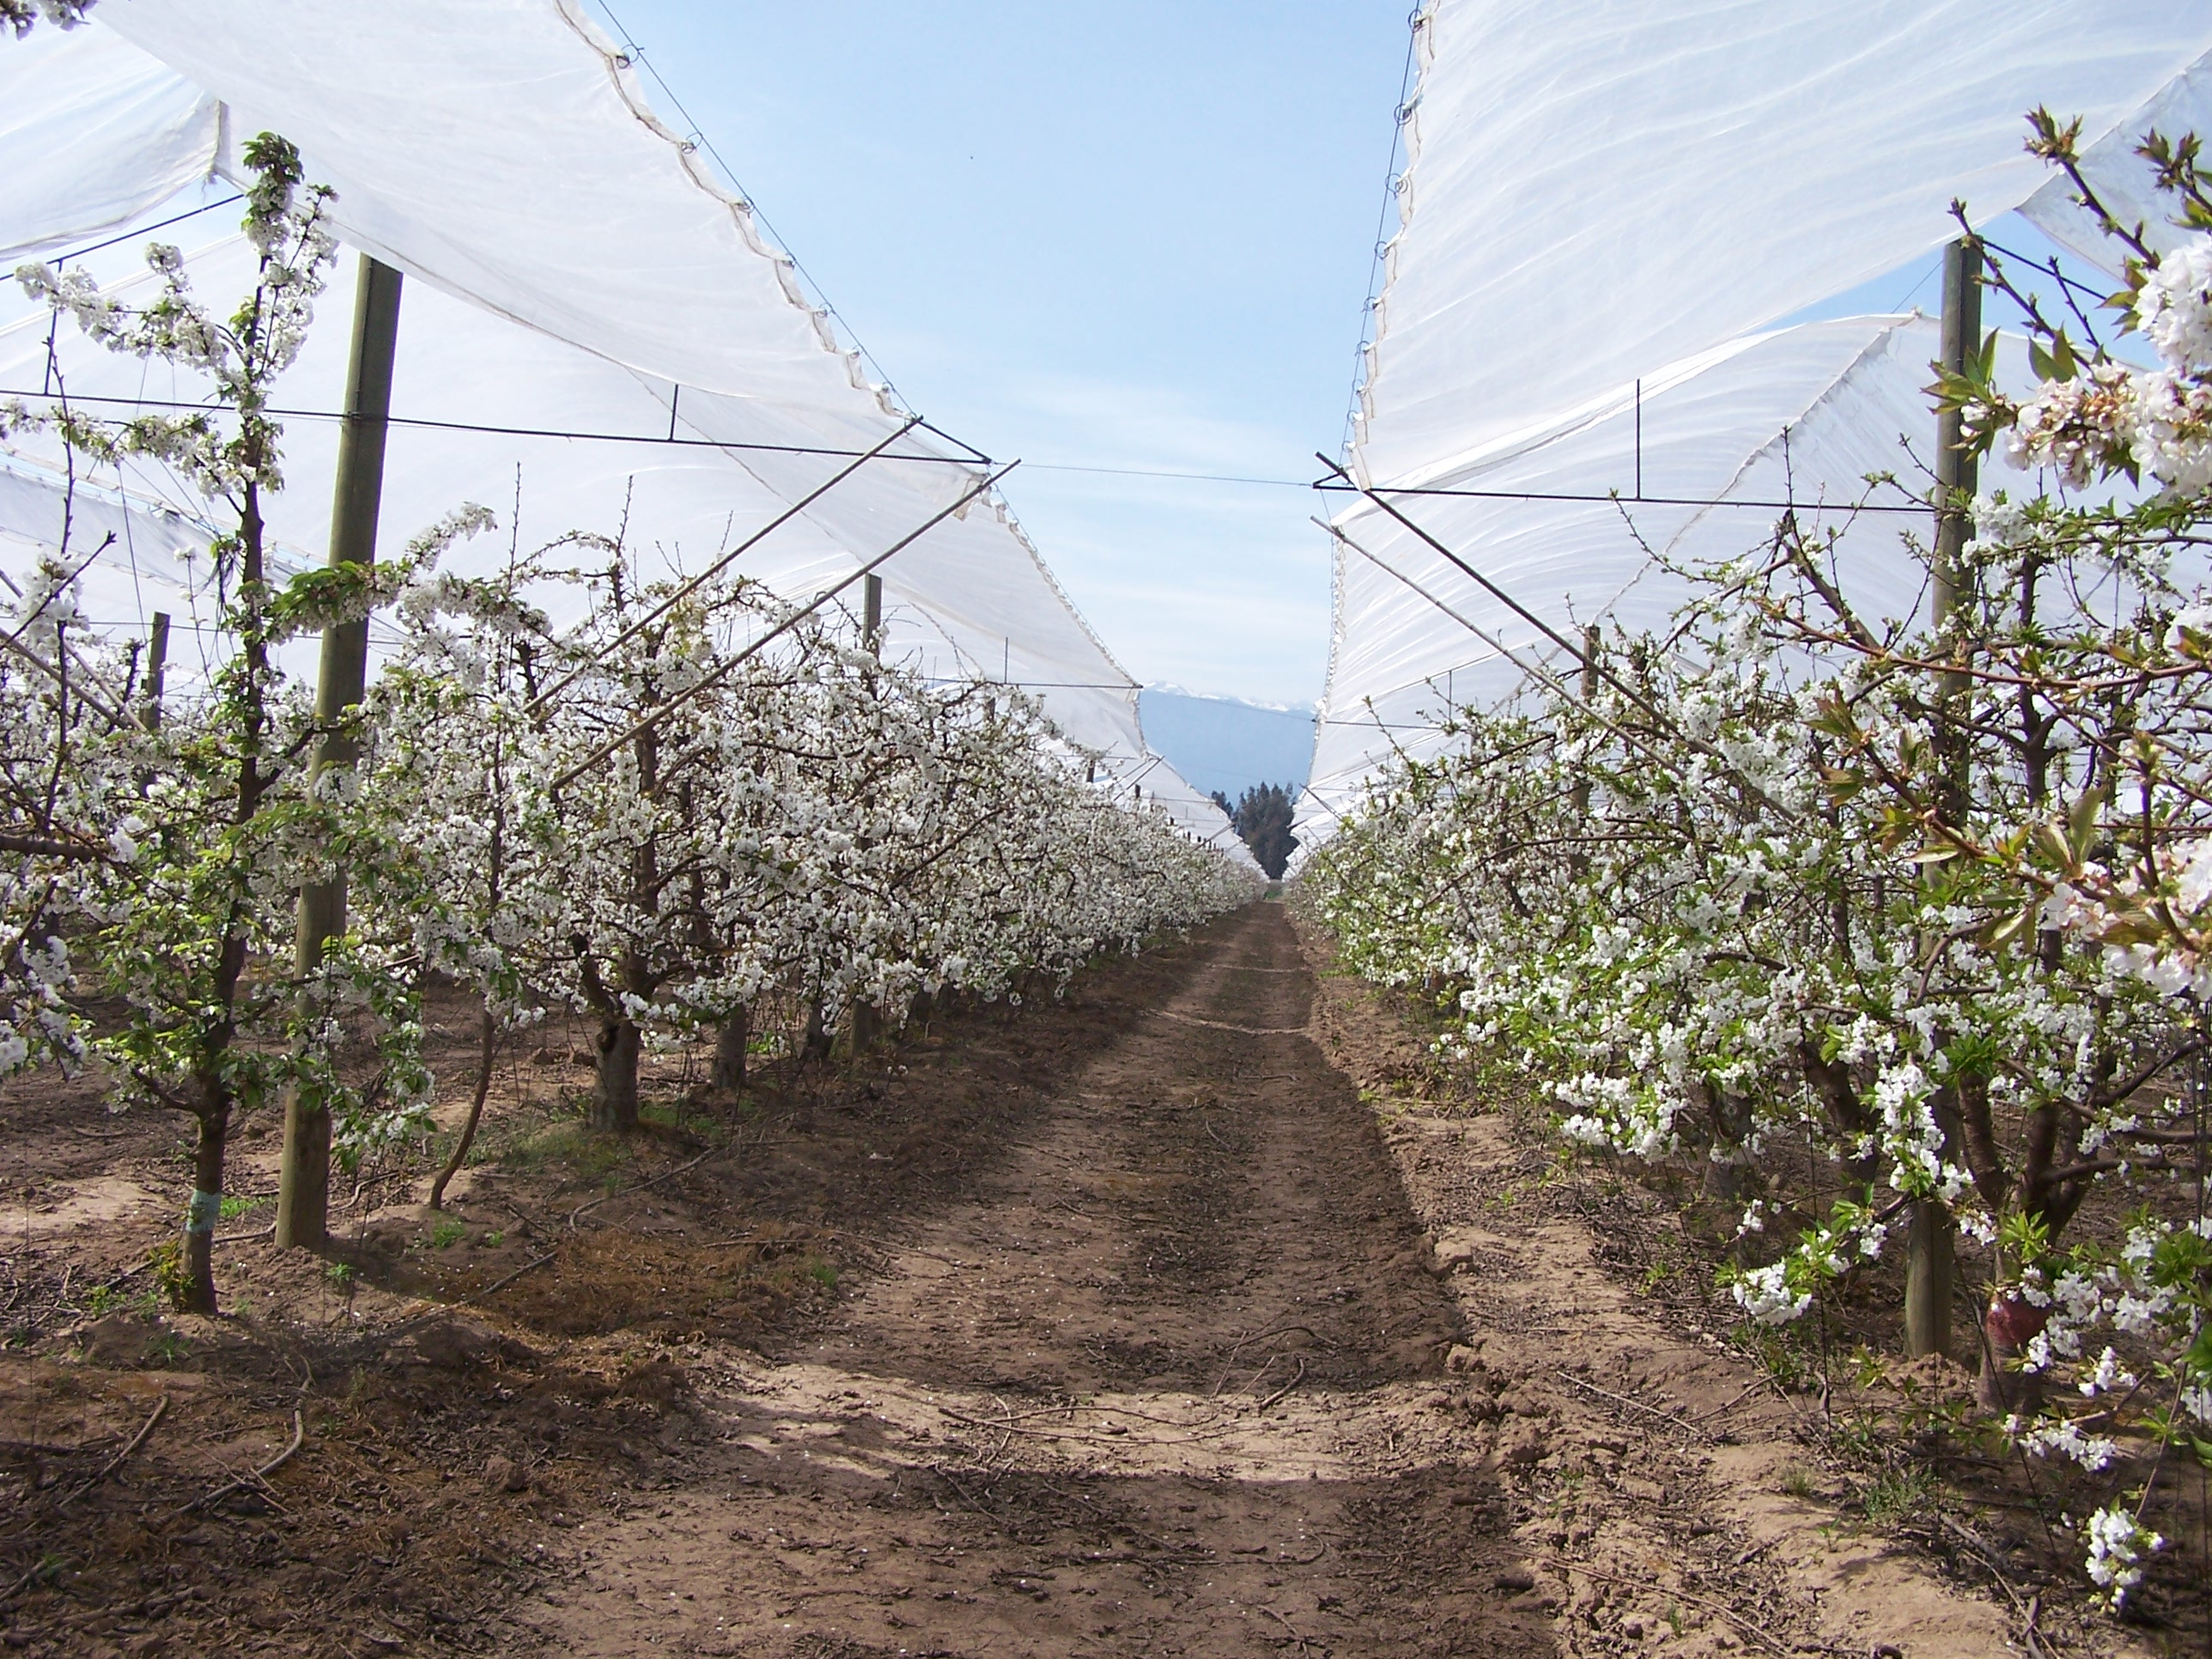 Retractable row covers have been erected over the trees in this cherry orchard.